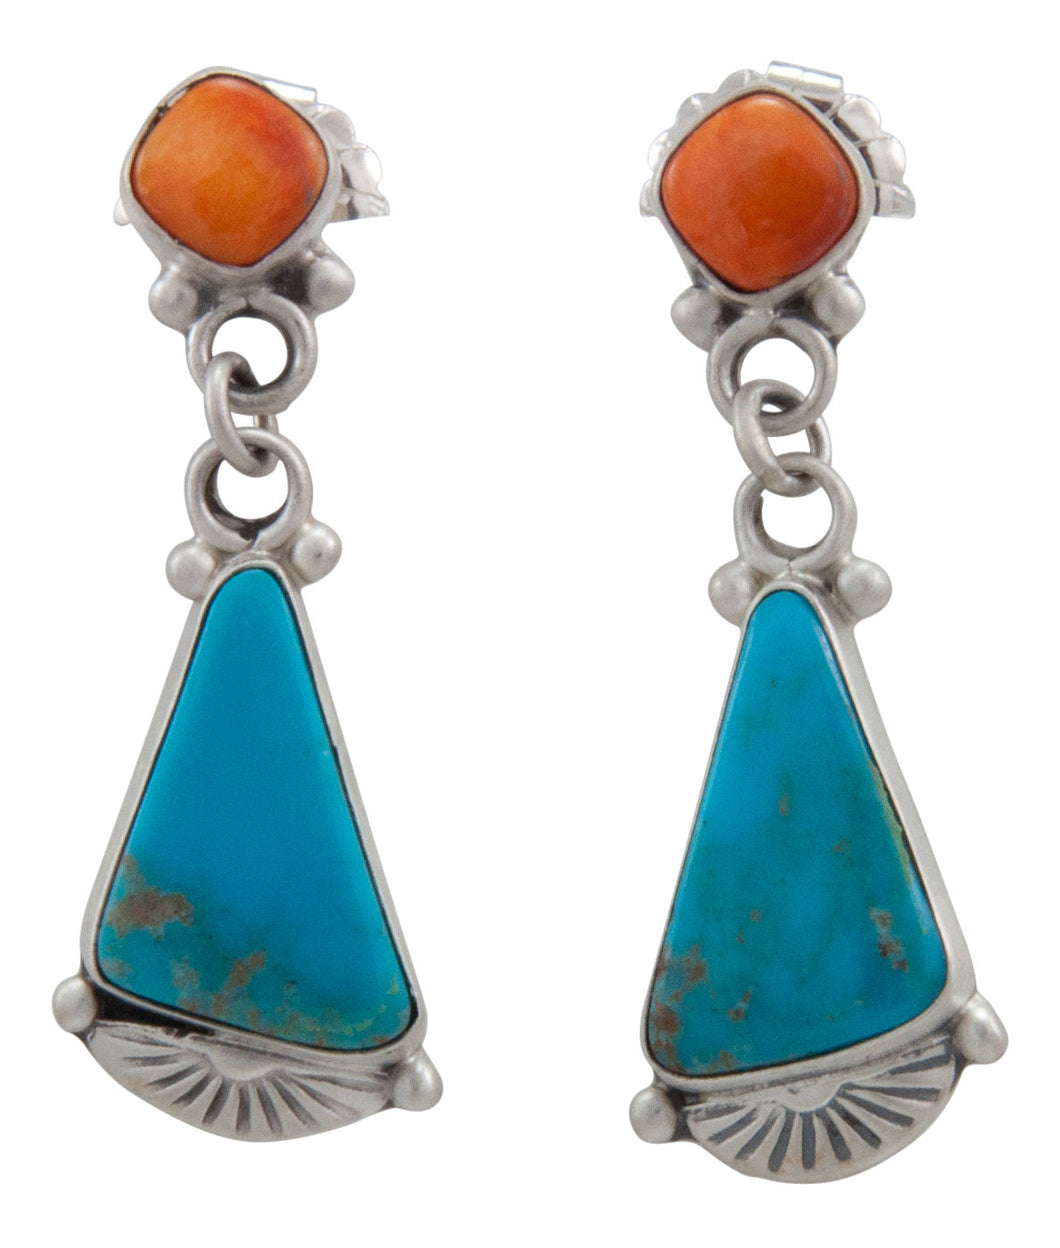 Navajo Native American Turquoise Mountain and Orange Shell Earrings by Willeto SKU231577